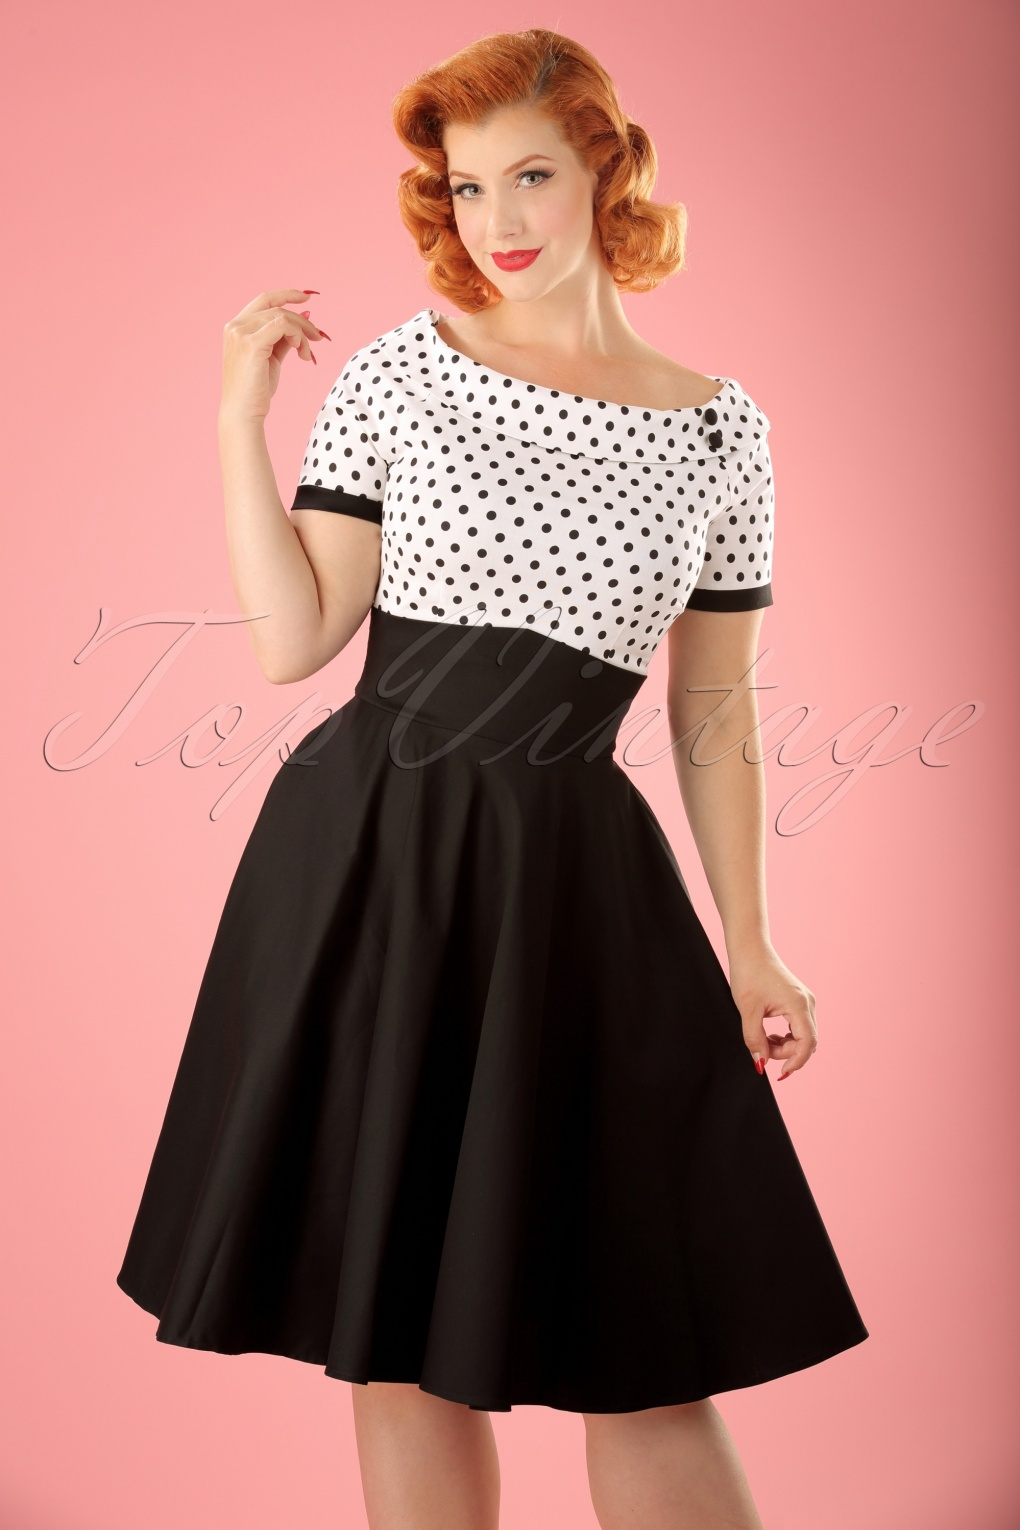 1940s Pinup Dresses for Sale 50s Darlene Polkadot Swing Dress in Black and White £45.45 AT vintagedancer.com